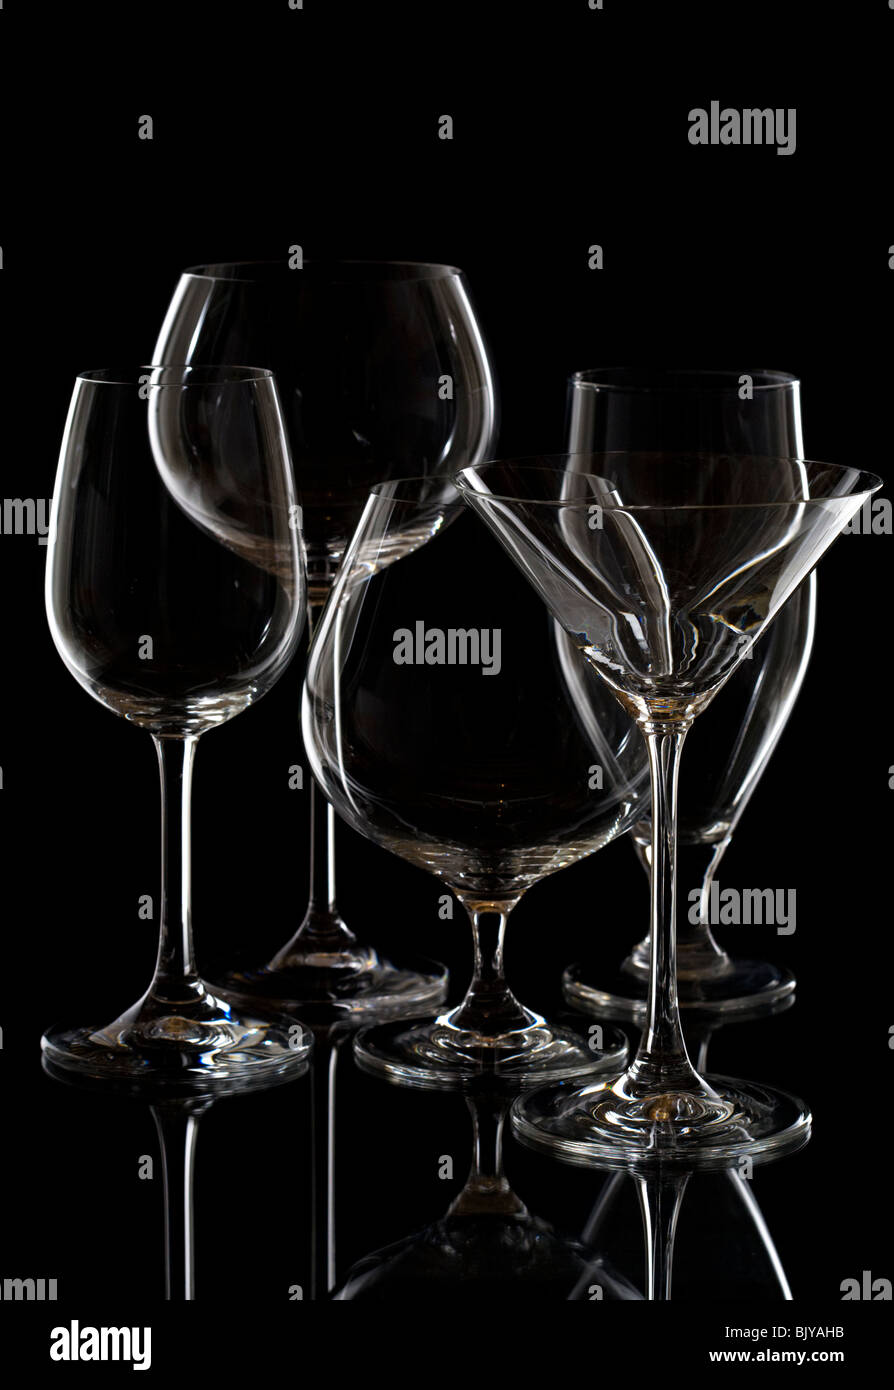 Set of bar glassware isolated on black background - Stock Image